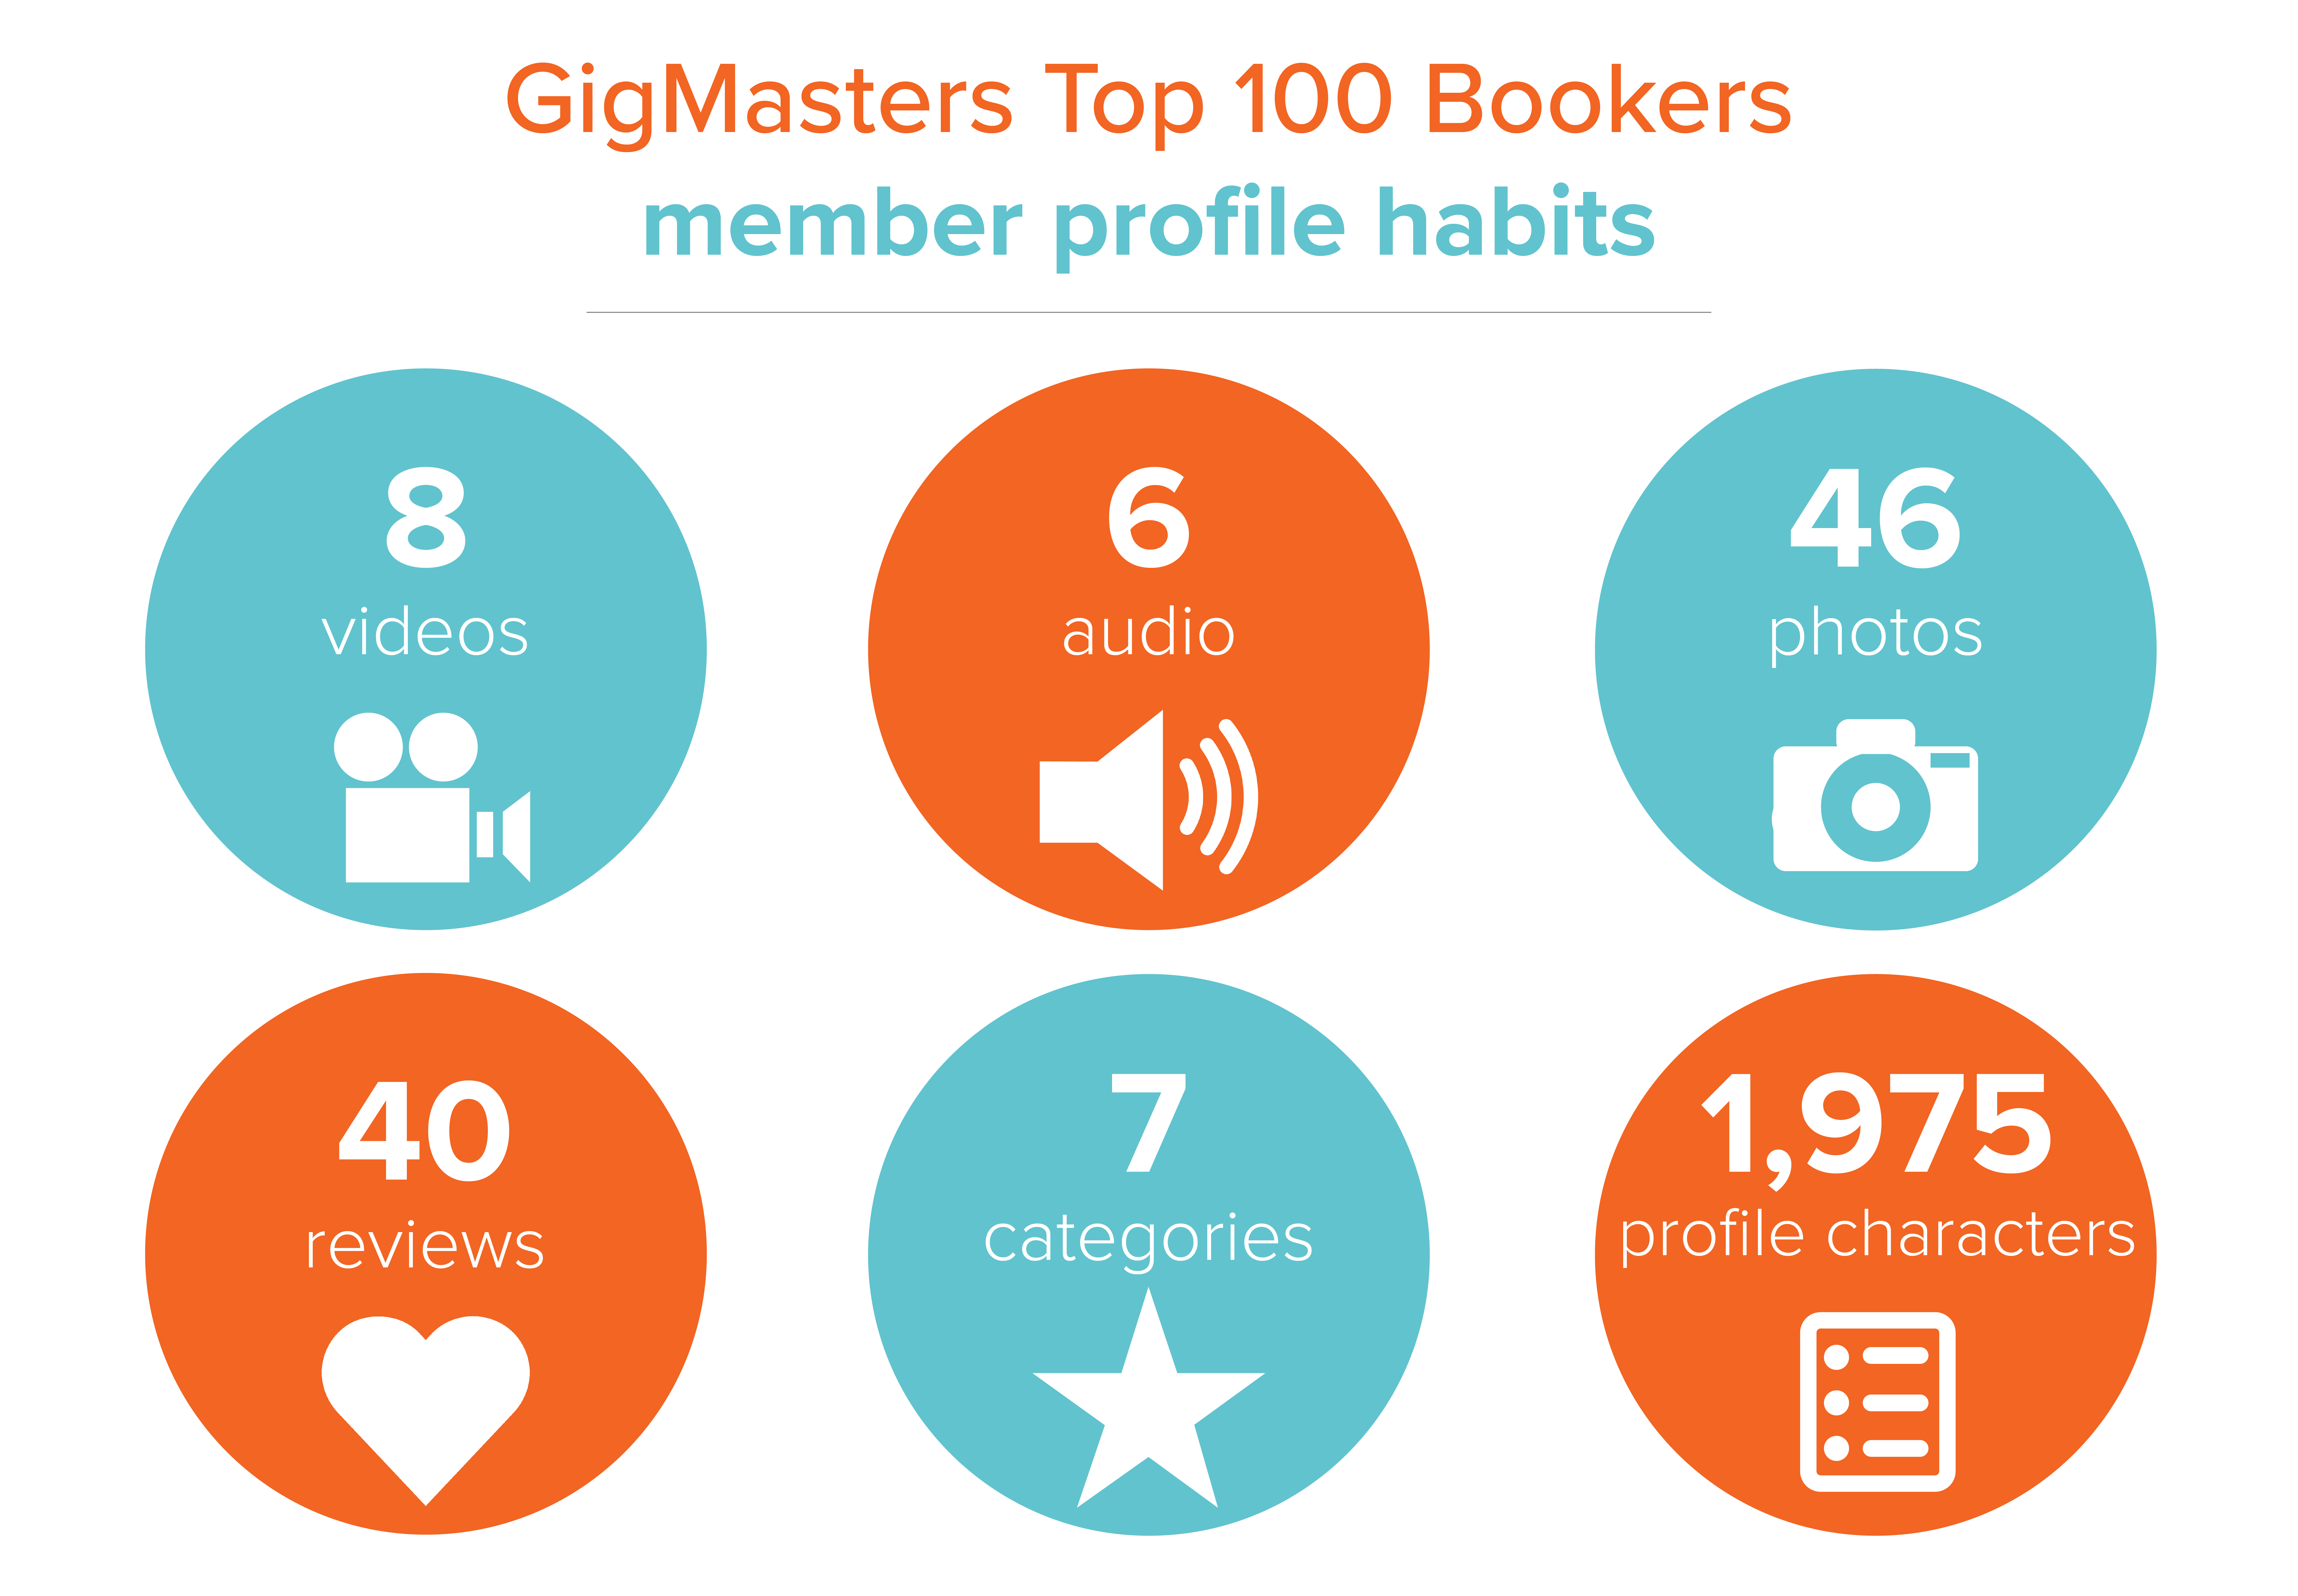 Profile Habits of GigMasters Top 100 Bookers